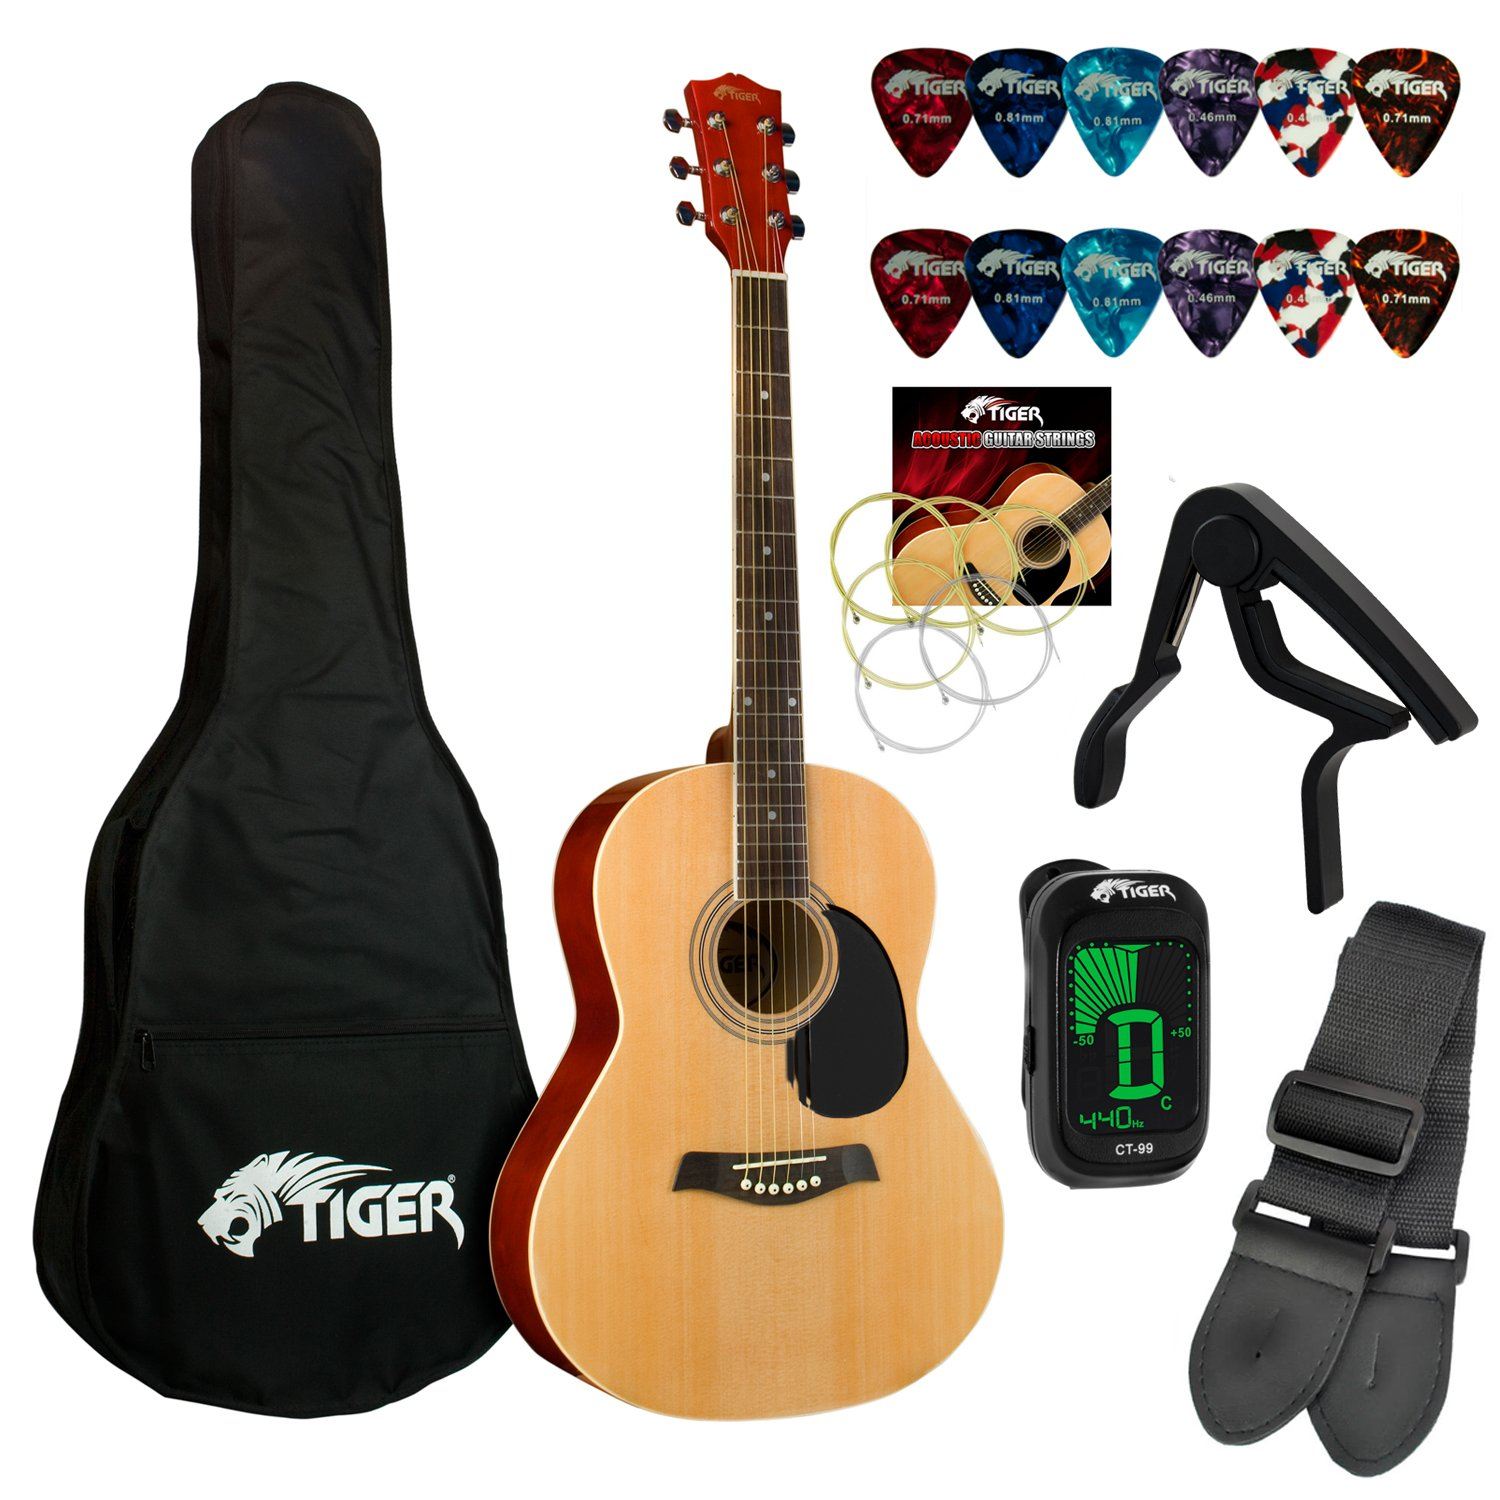 Tiger Beginners Acoustic Guitar Package - Natural TIGERMUSIC AZK-ACG2-NT-K